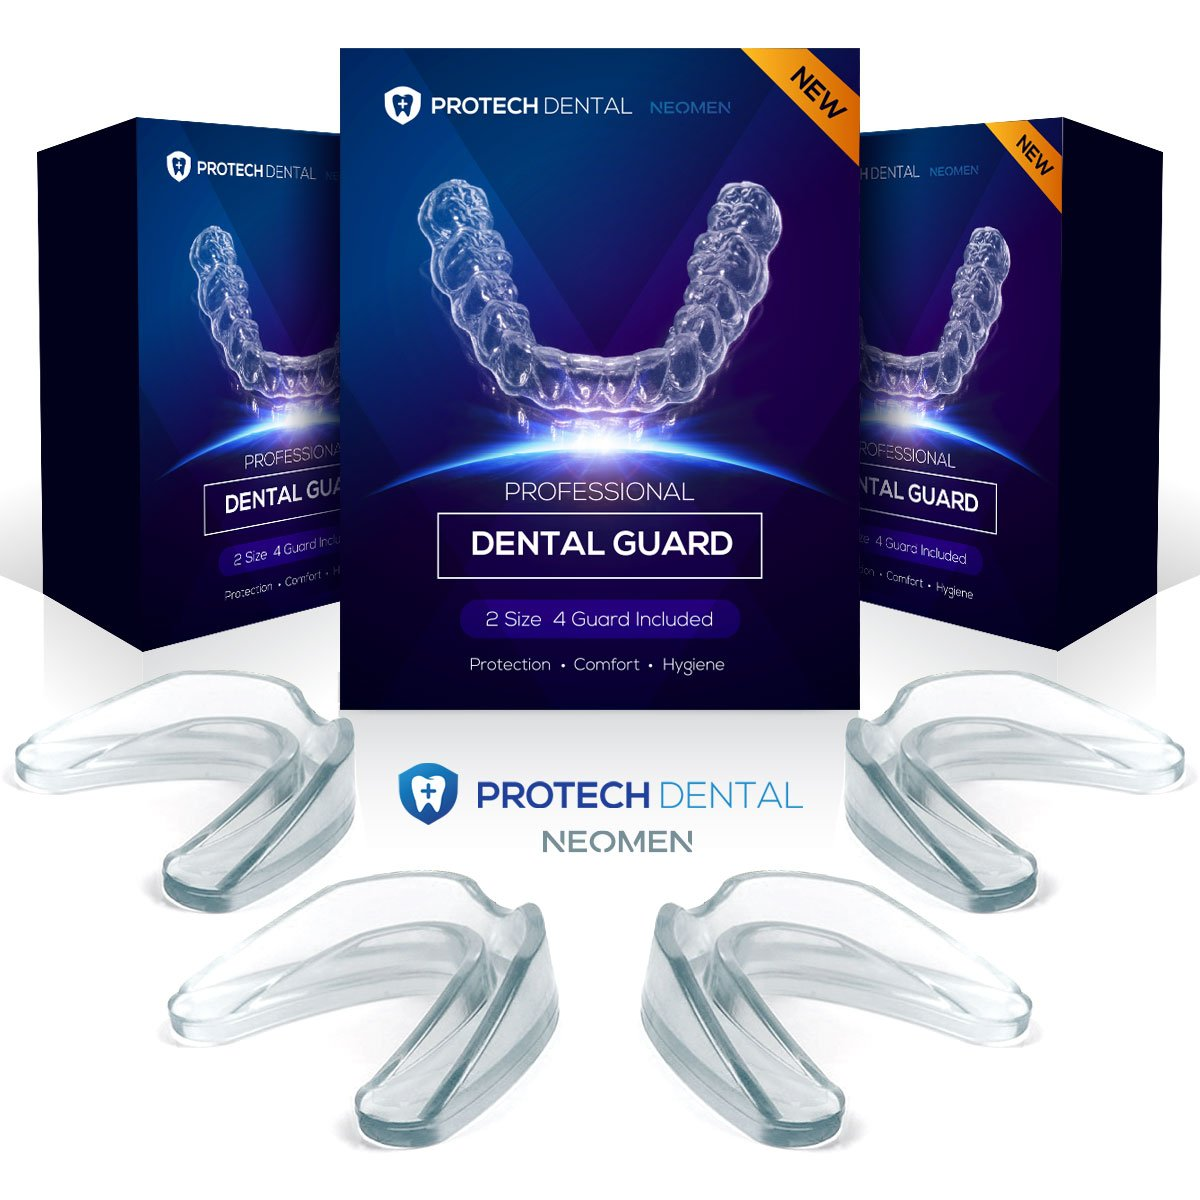 Protech Dental Professional Dental Guard -Pack of 4- Stops Teeth Grinding, Bruxism, & Eliminates, Teeth Clenching. 100% Satisfaction.